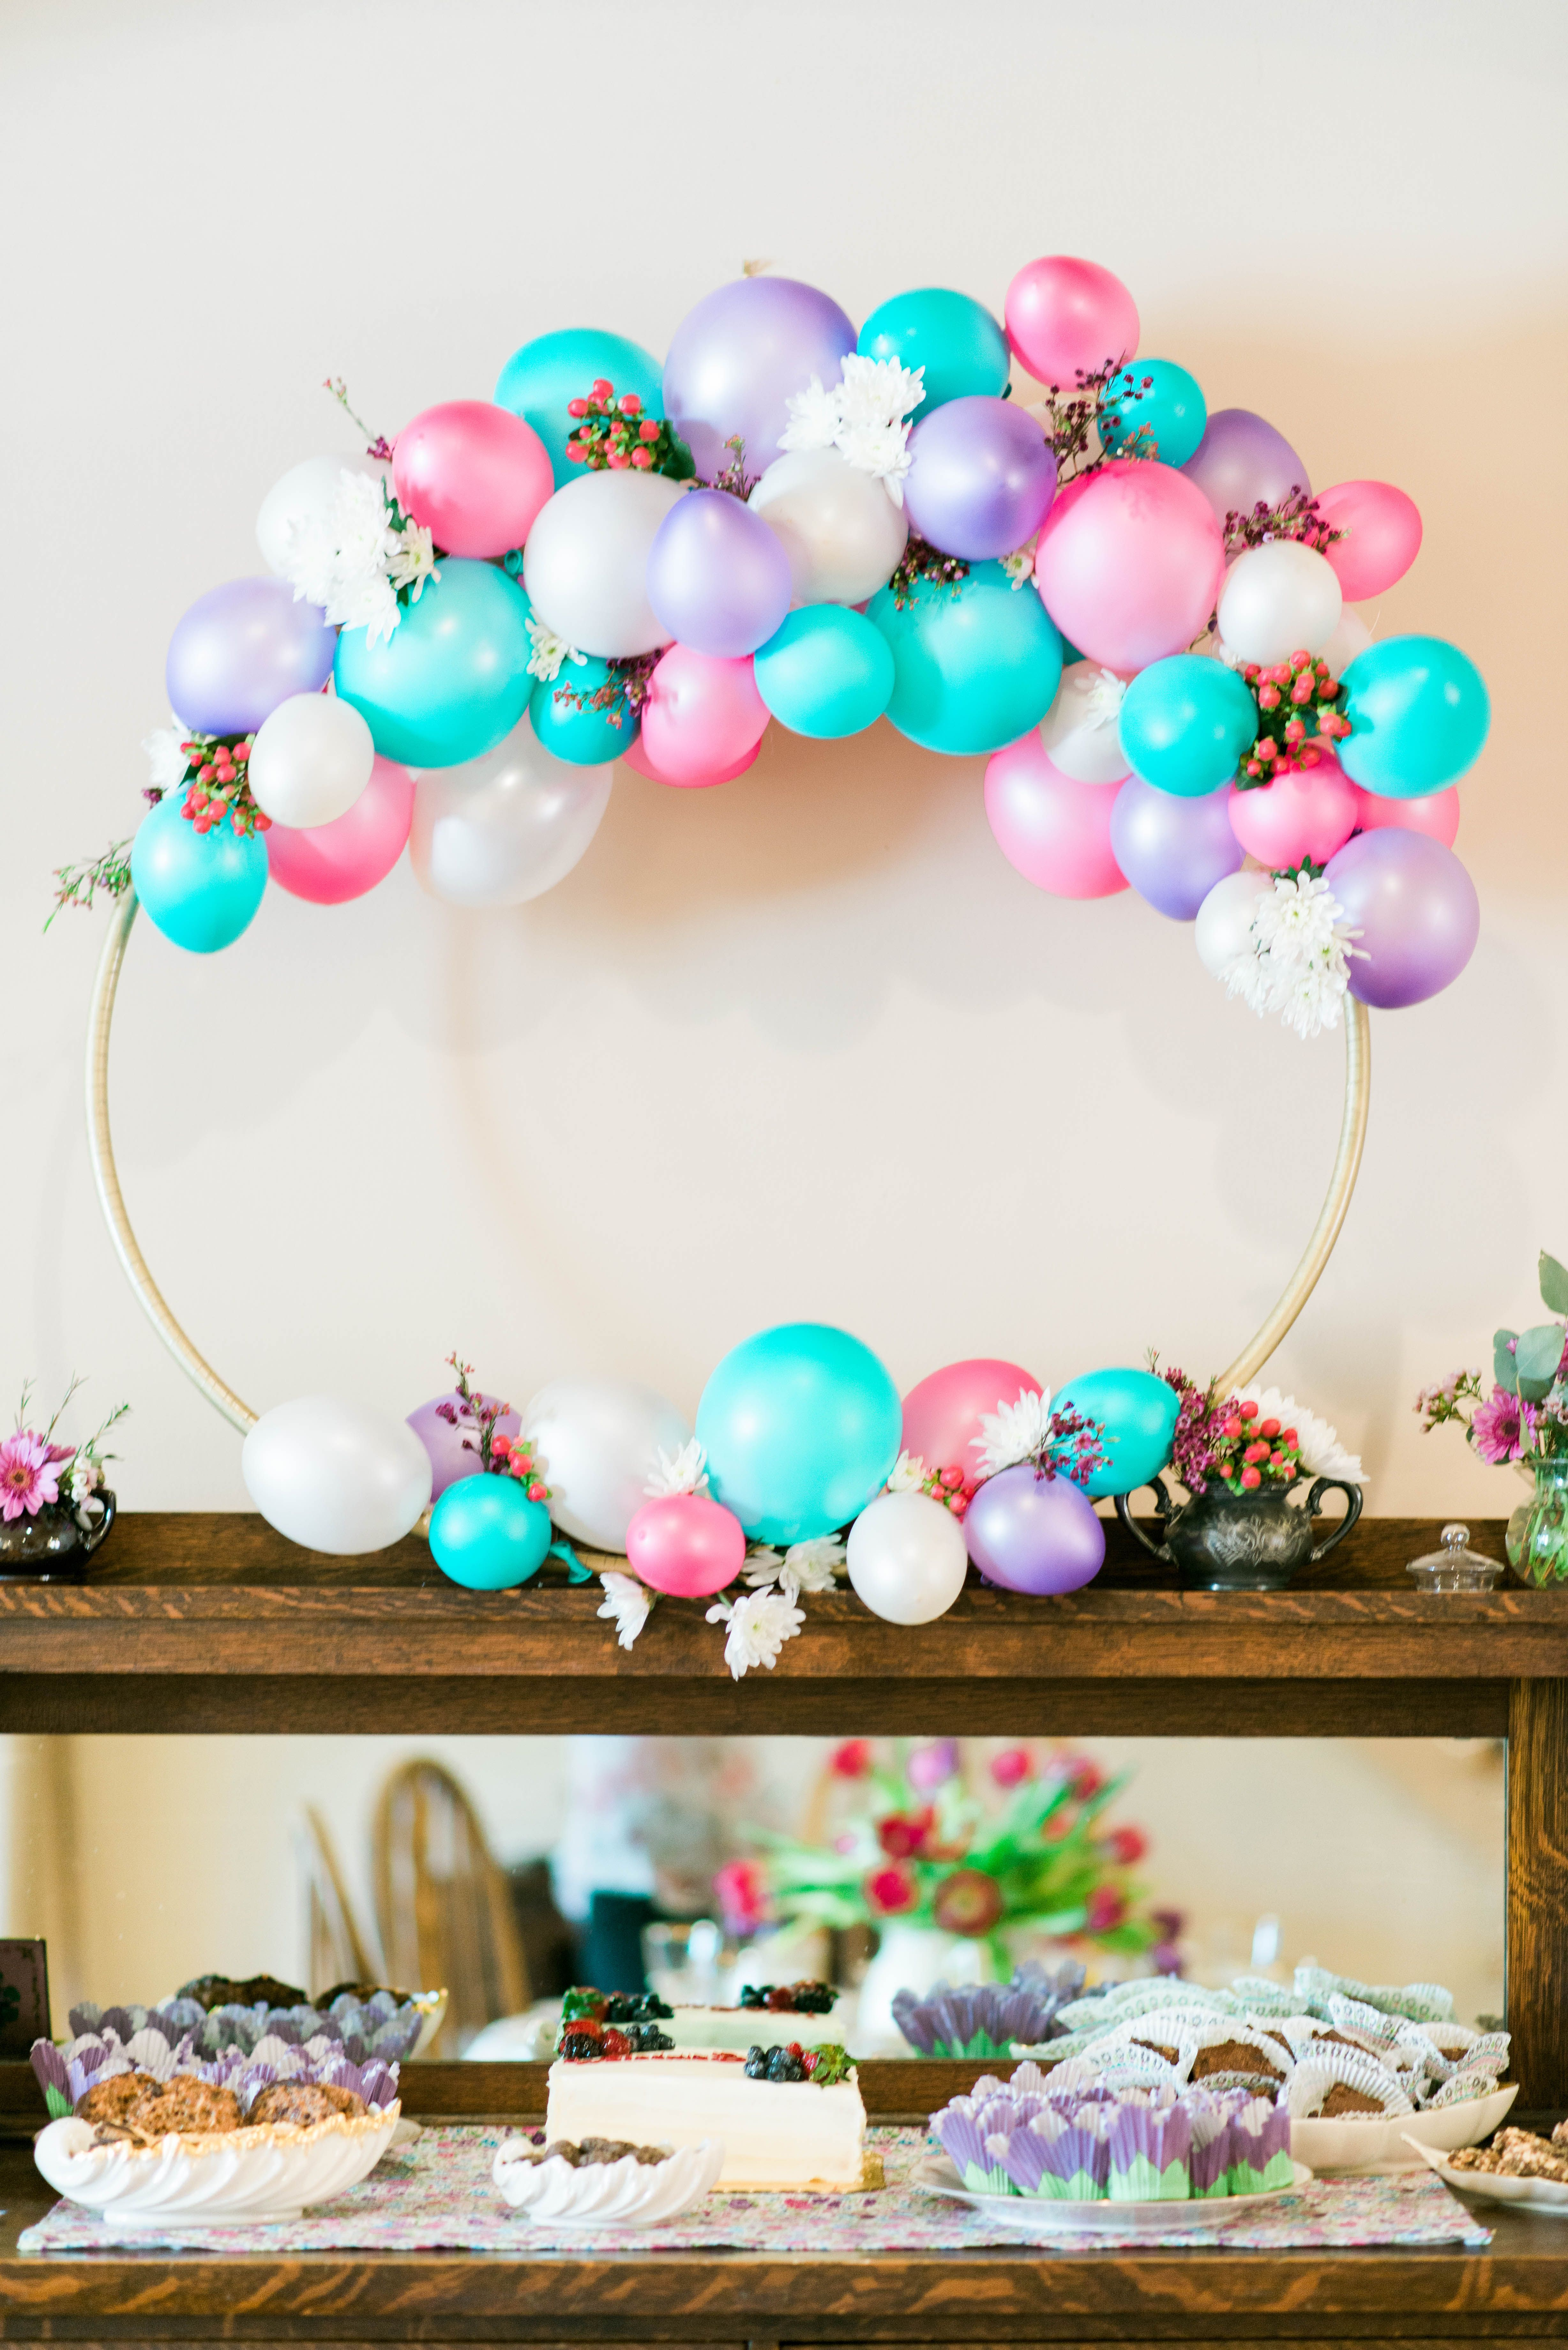 A Floral Balloon Wreath For The Centerpiece Of A Baby Shower In Houston Texas Made With A Hula Hoop Spray Paint Low Temp Hot Balloon Wreath Balloons Hula